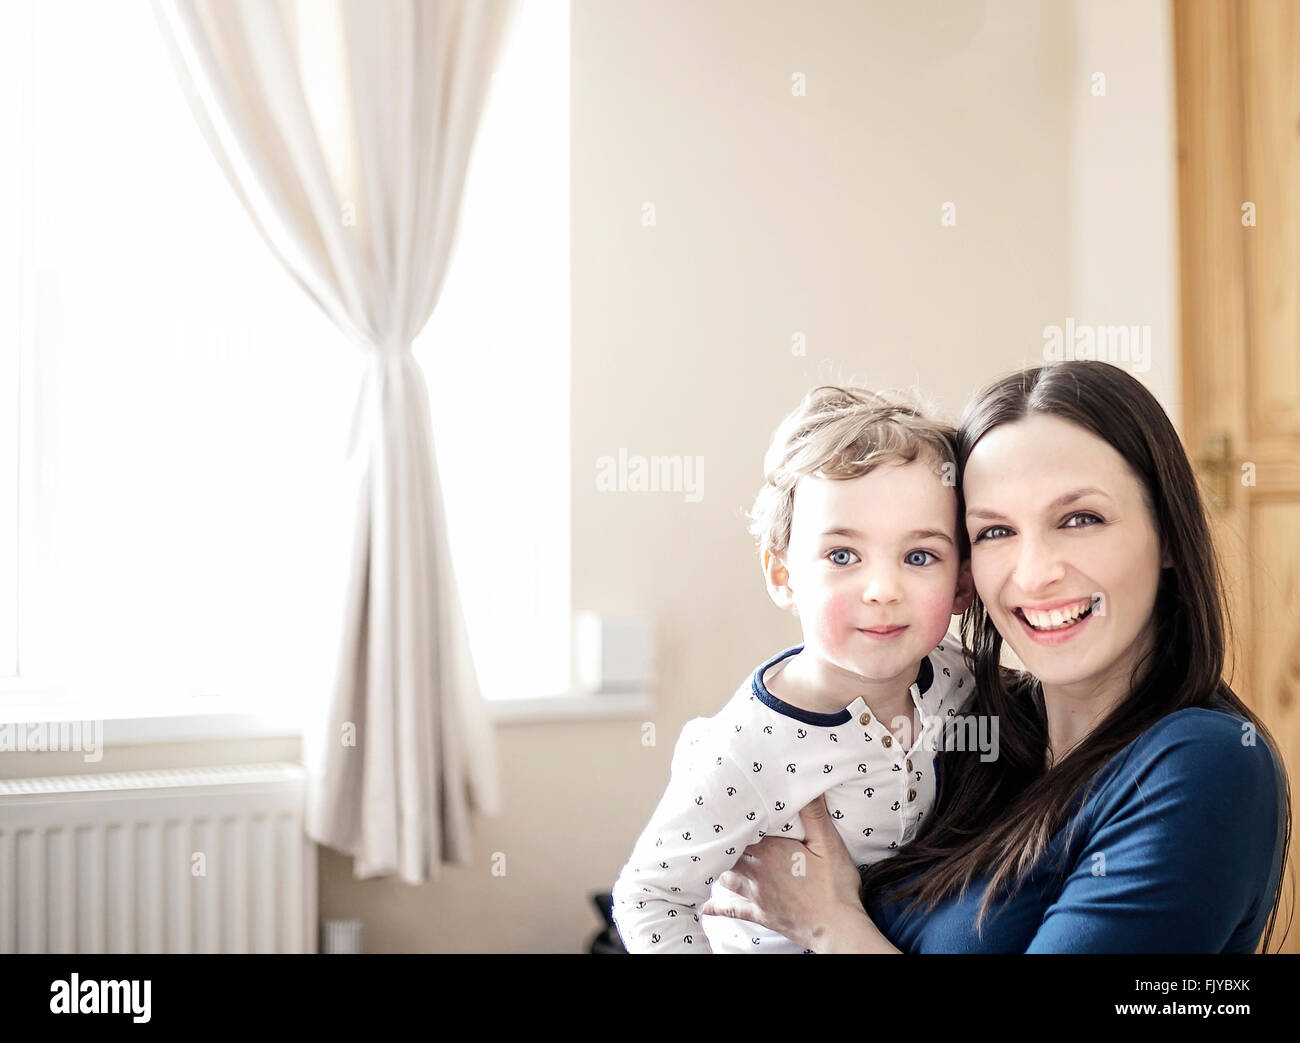 young mom with her small boy in arms at home - Stock Image